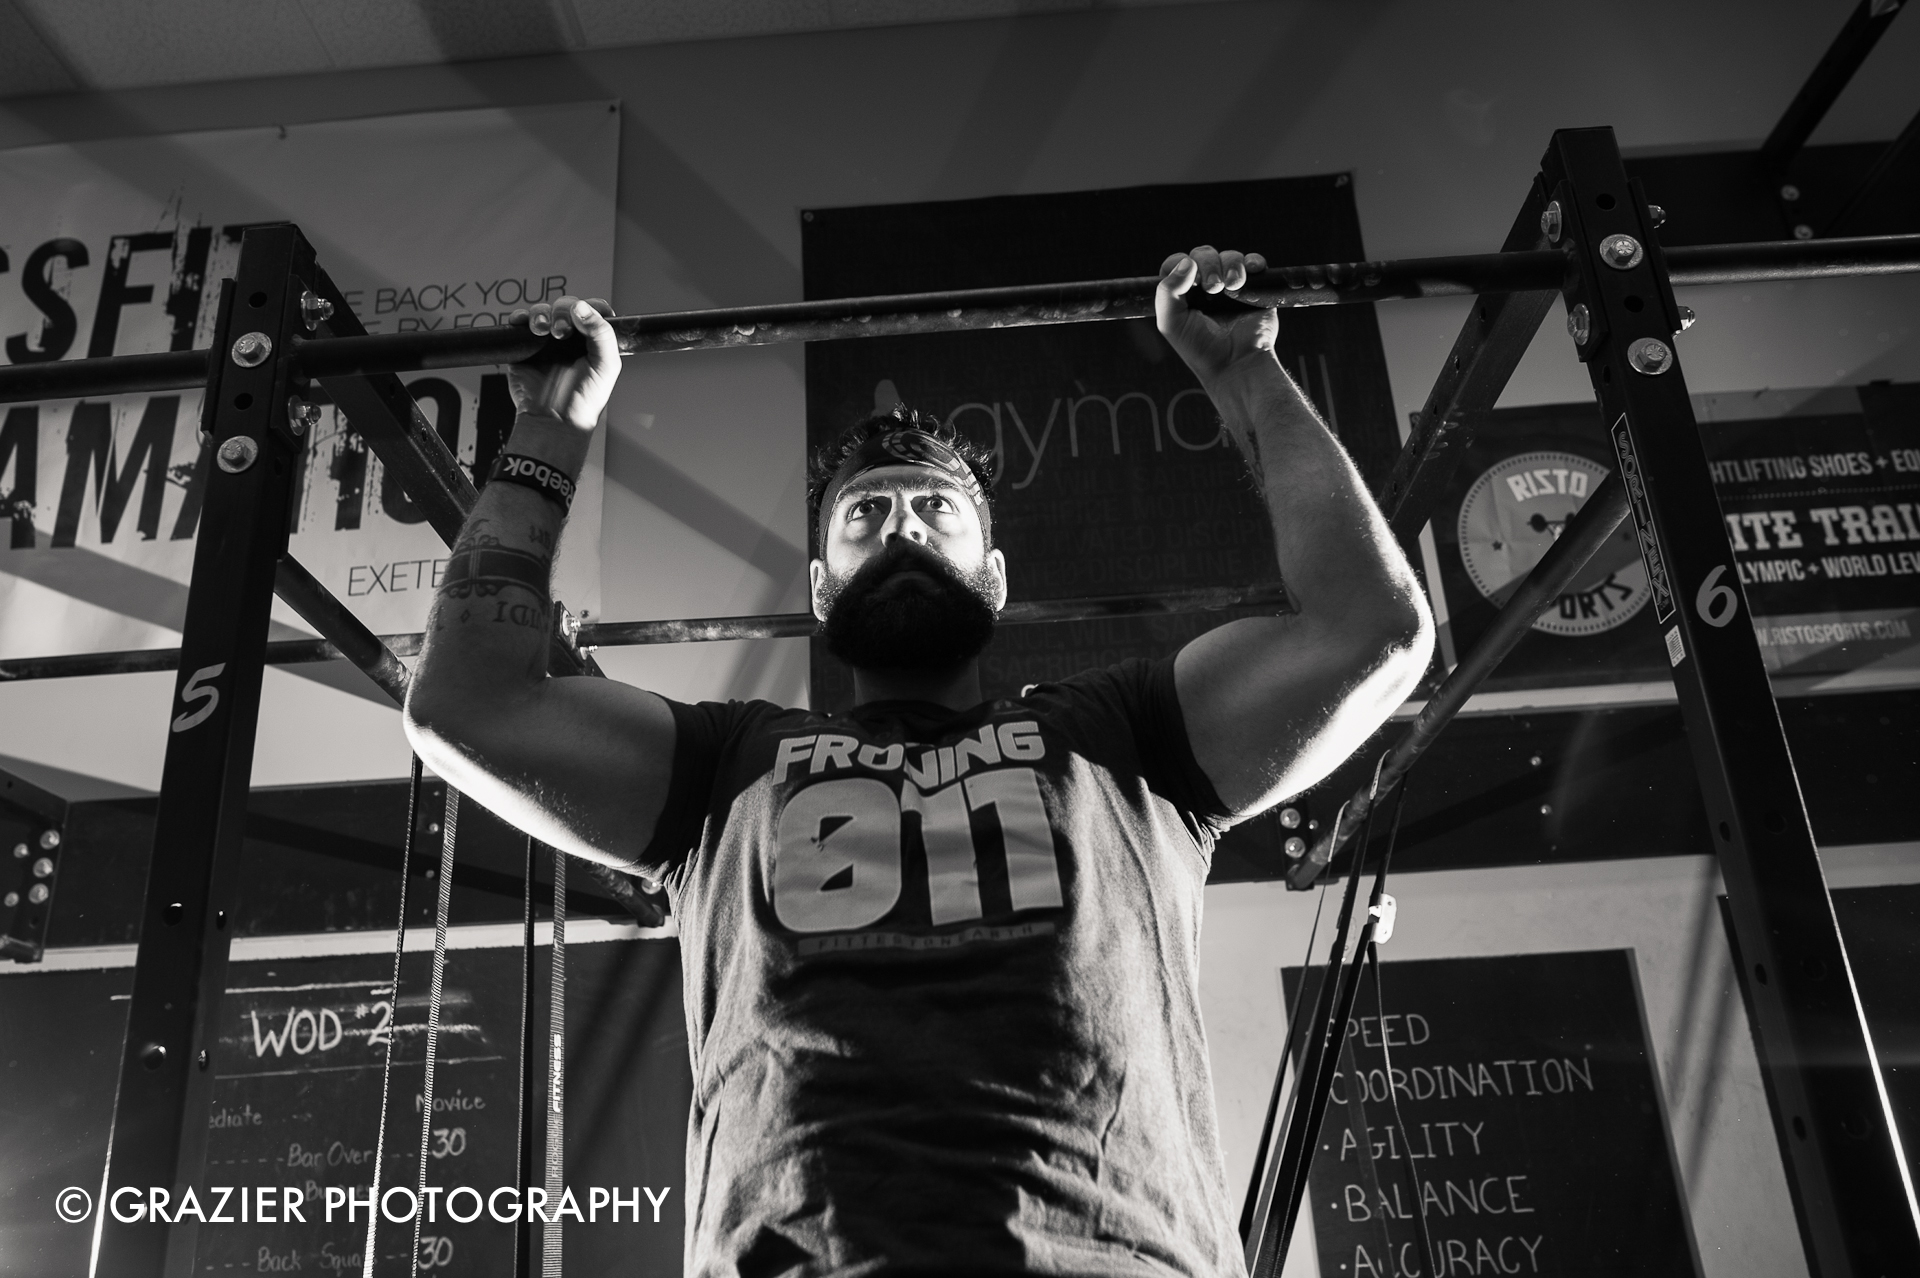 Grazier_Photography_Crossfit_150328-1.JPG